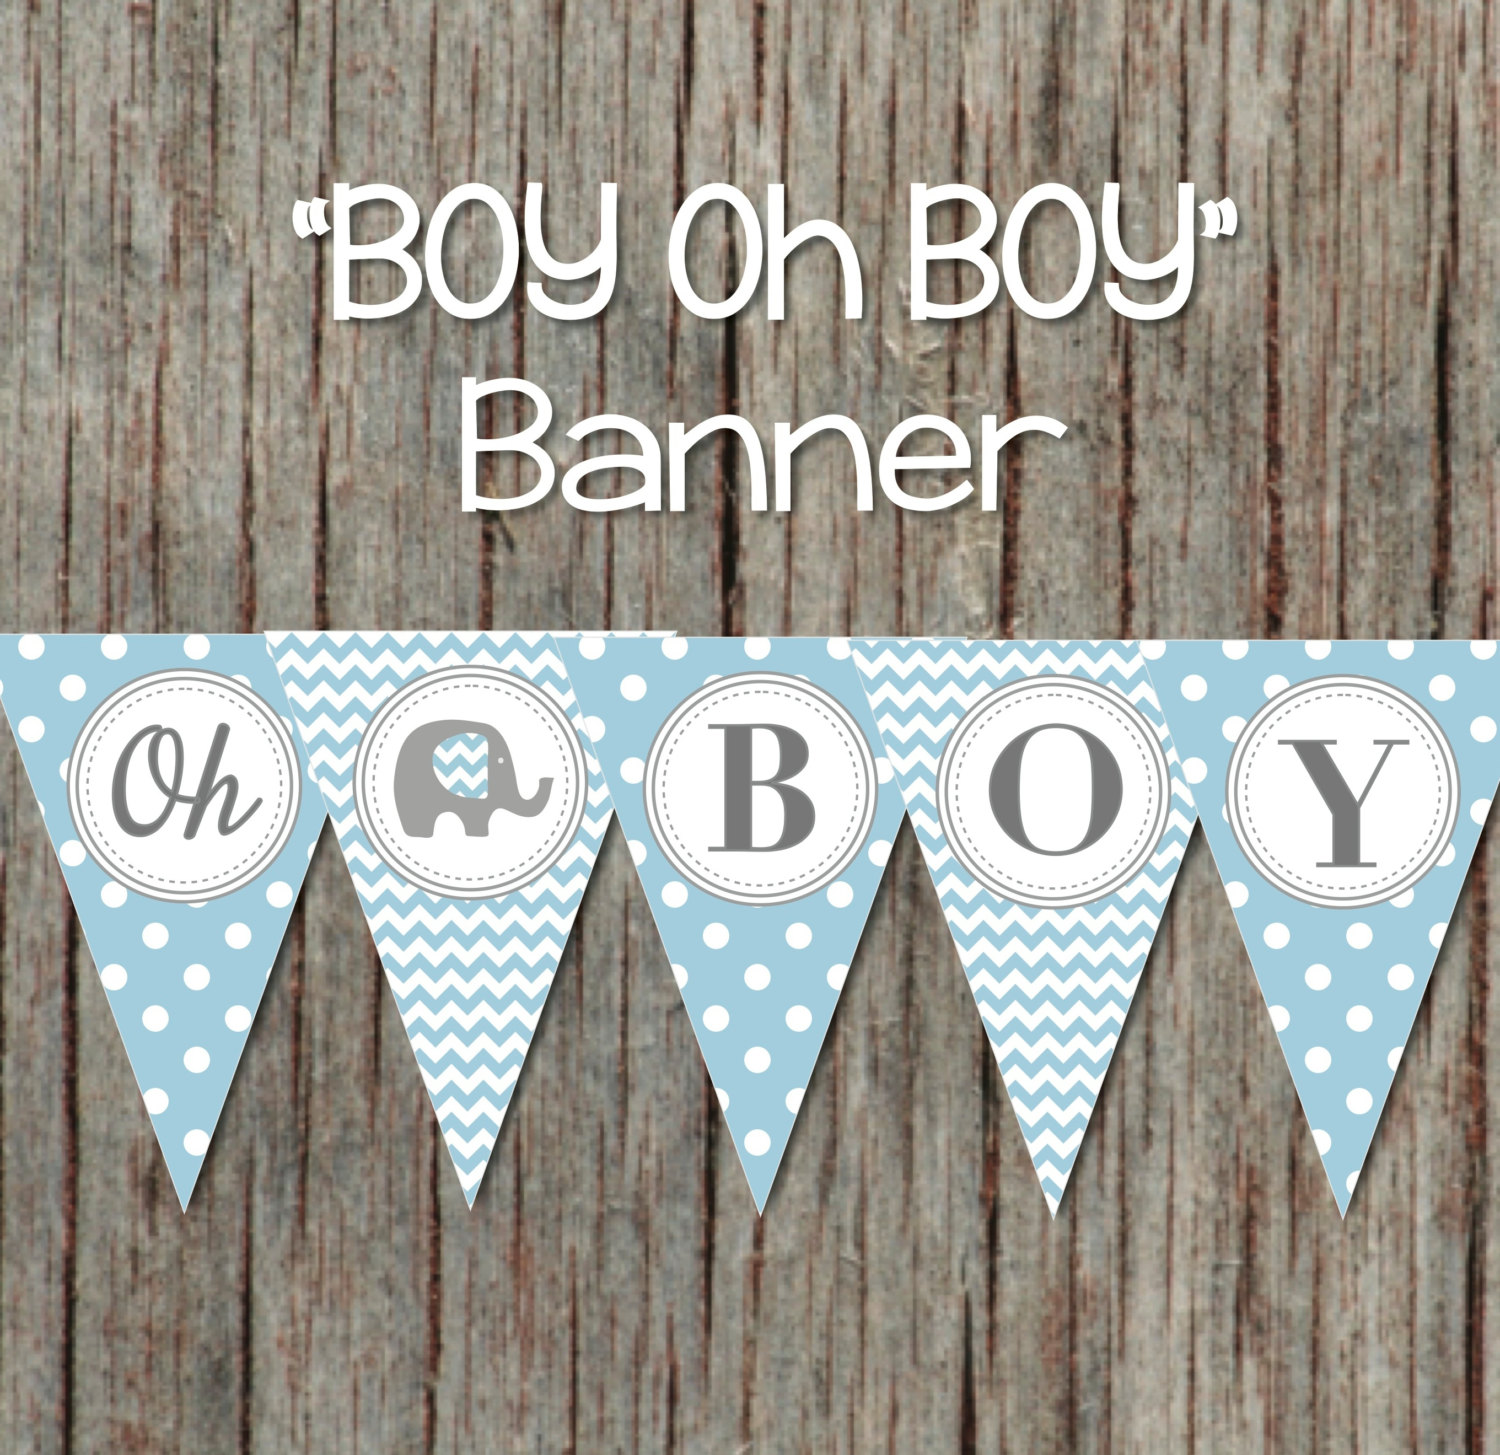 Full Size of Baby Shower:89+ Indulging Baby Shower Banner Picture Inspirations Baby Shower Banner Boy Oh Boy Printable Baby Shower By Bumpandbeyonddesigns On Zibbet